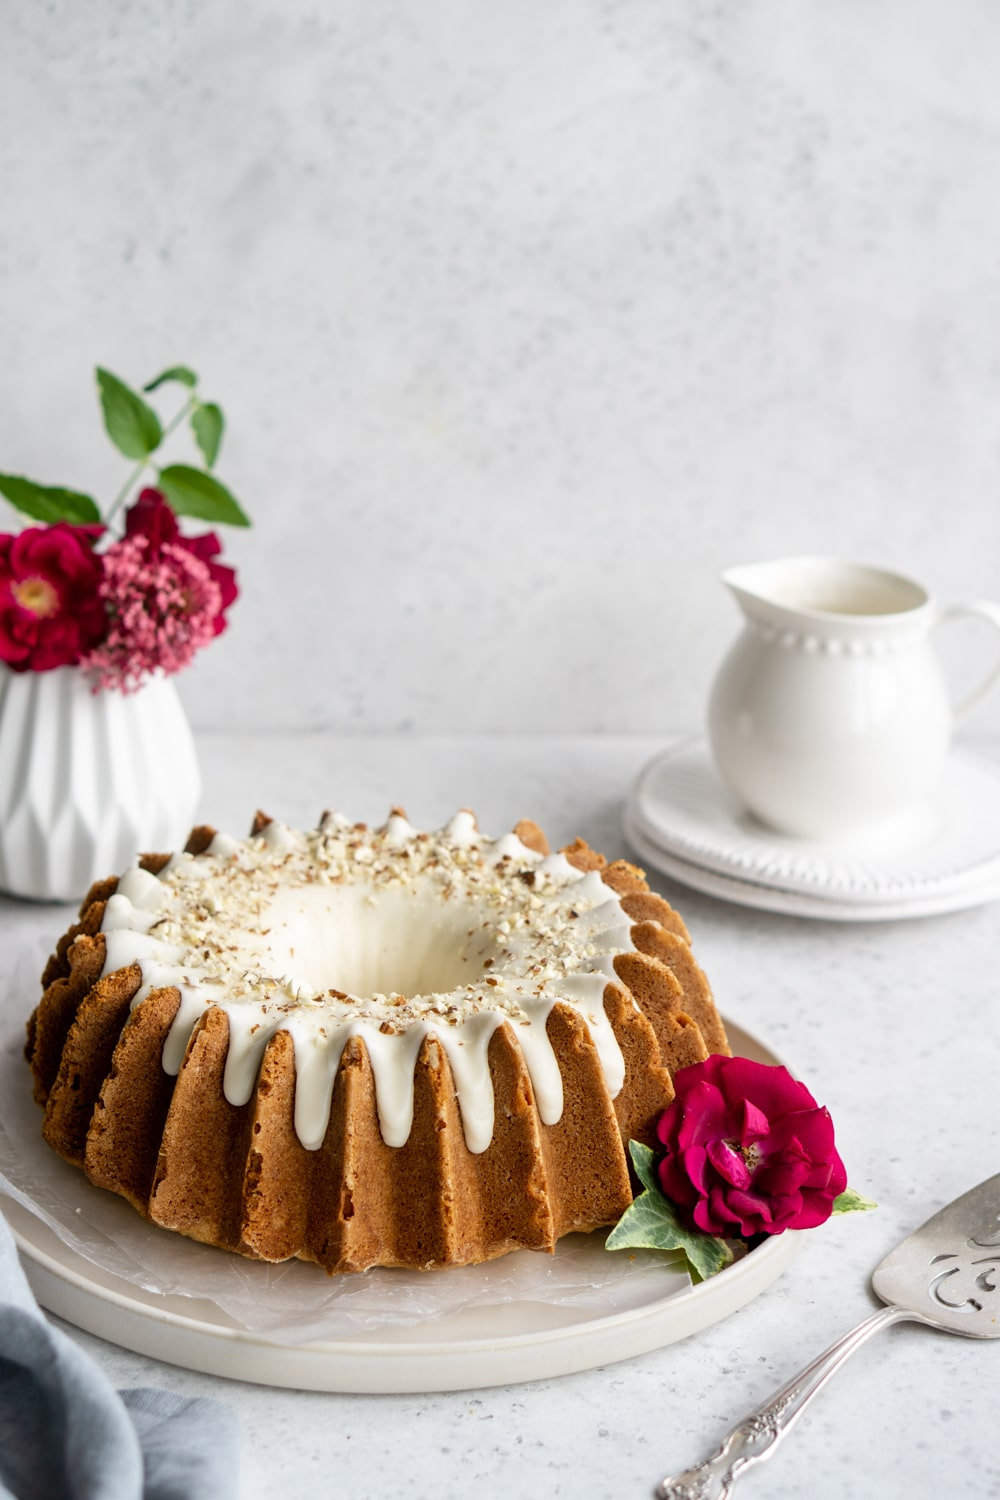 almond bundt cake on a plate with flowers in the background